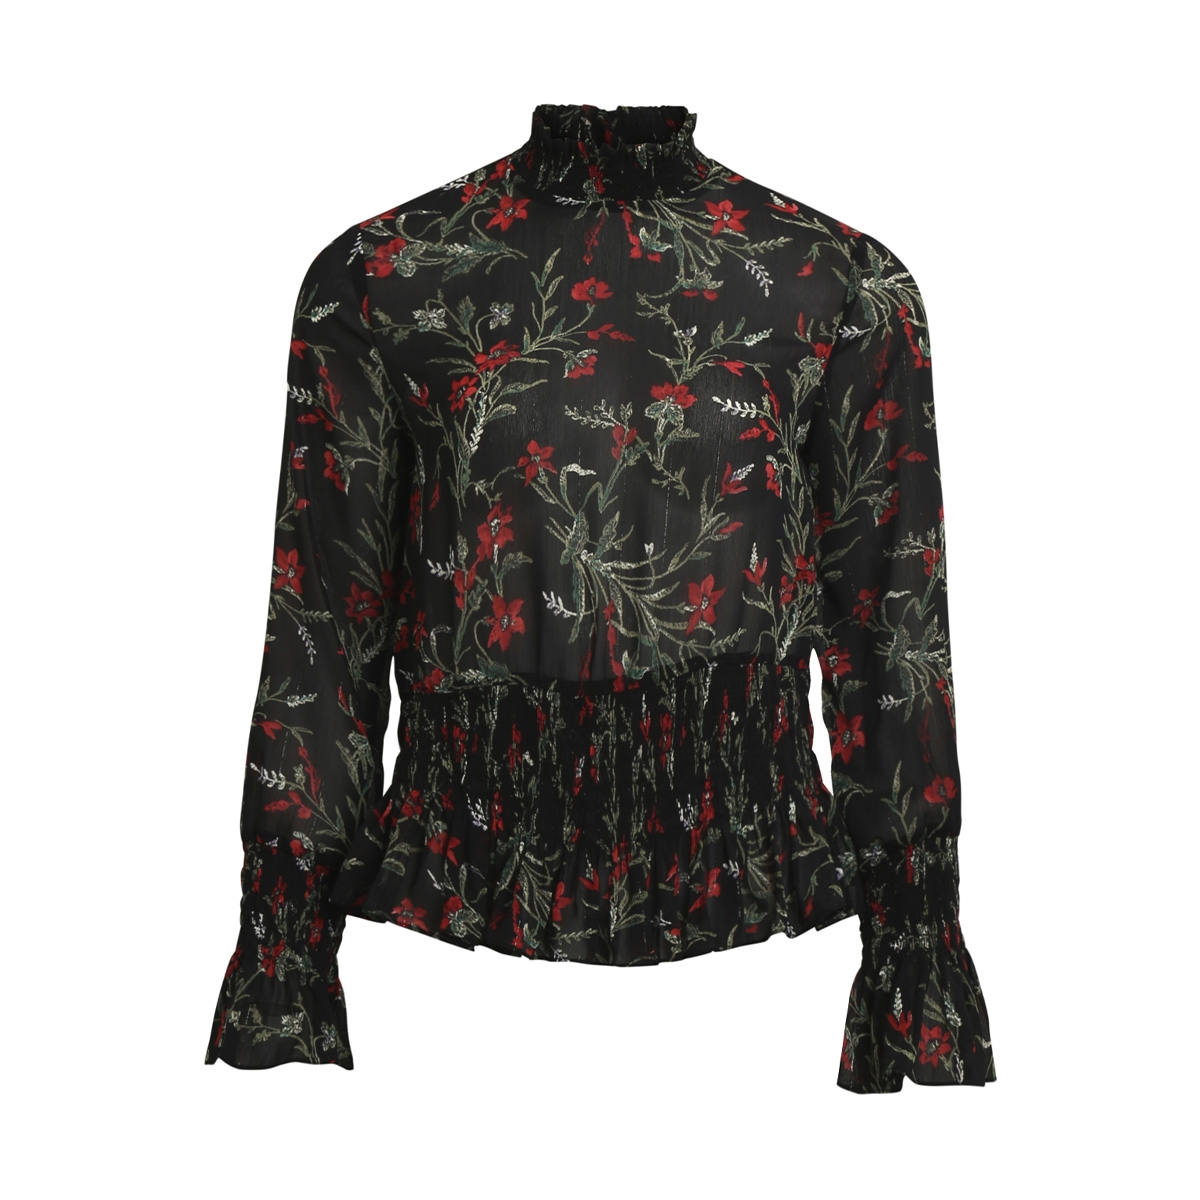 objlani l/s top a wi 23026484 object blouse black/red